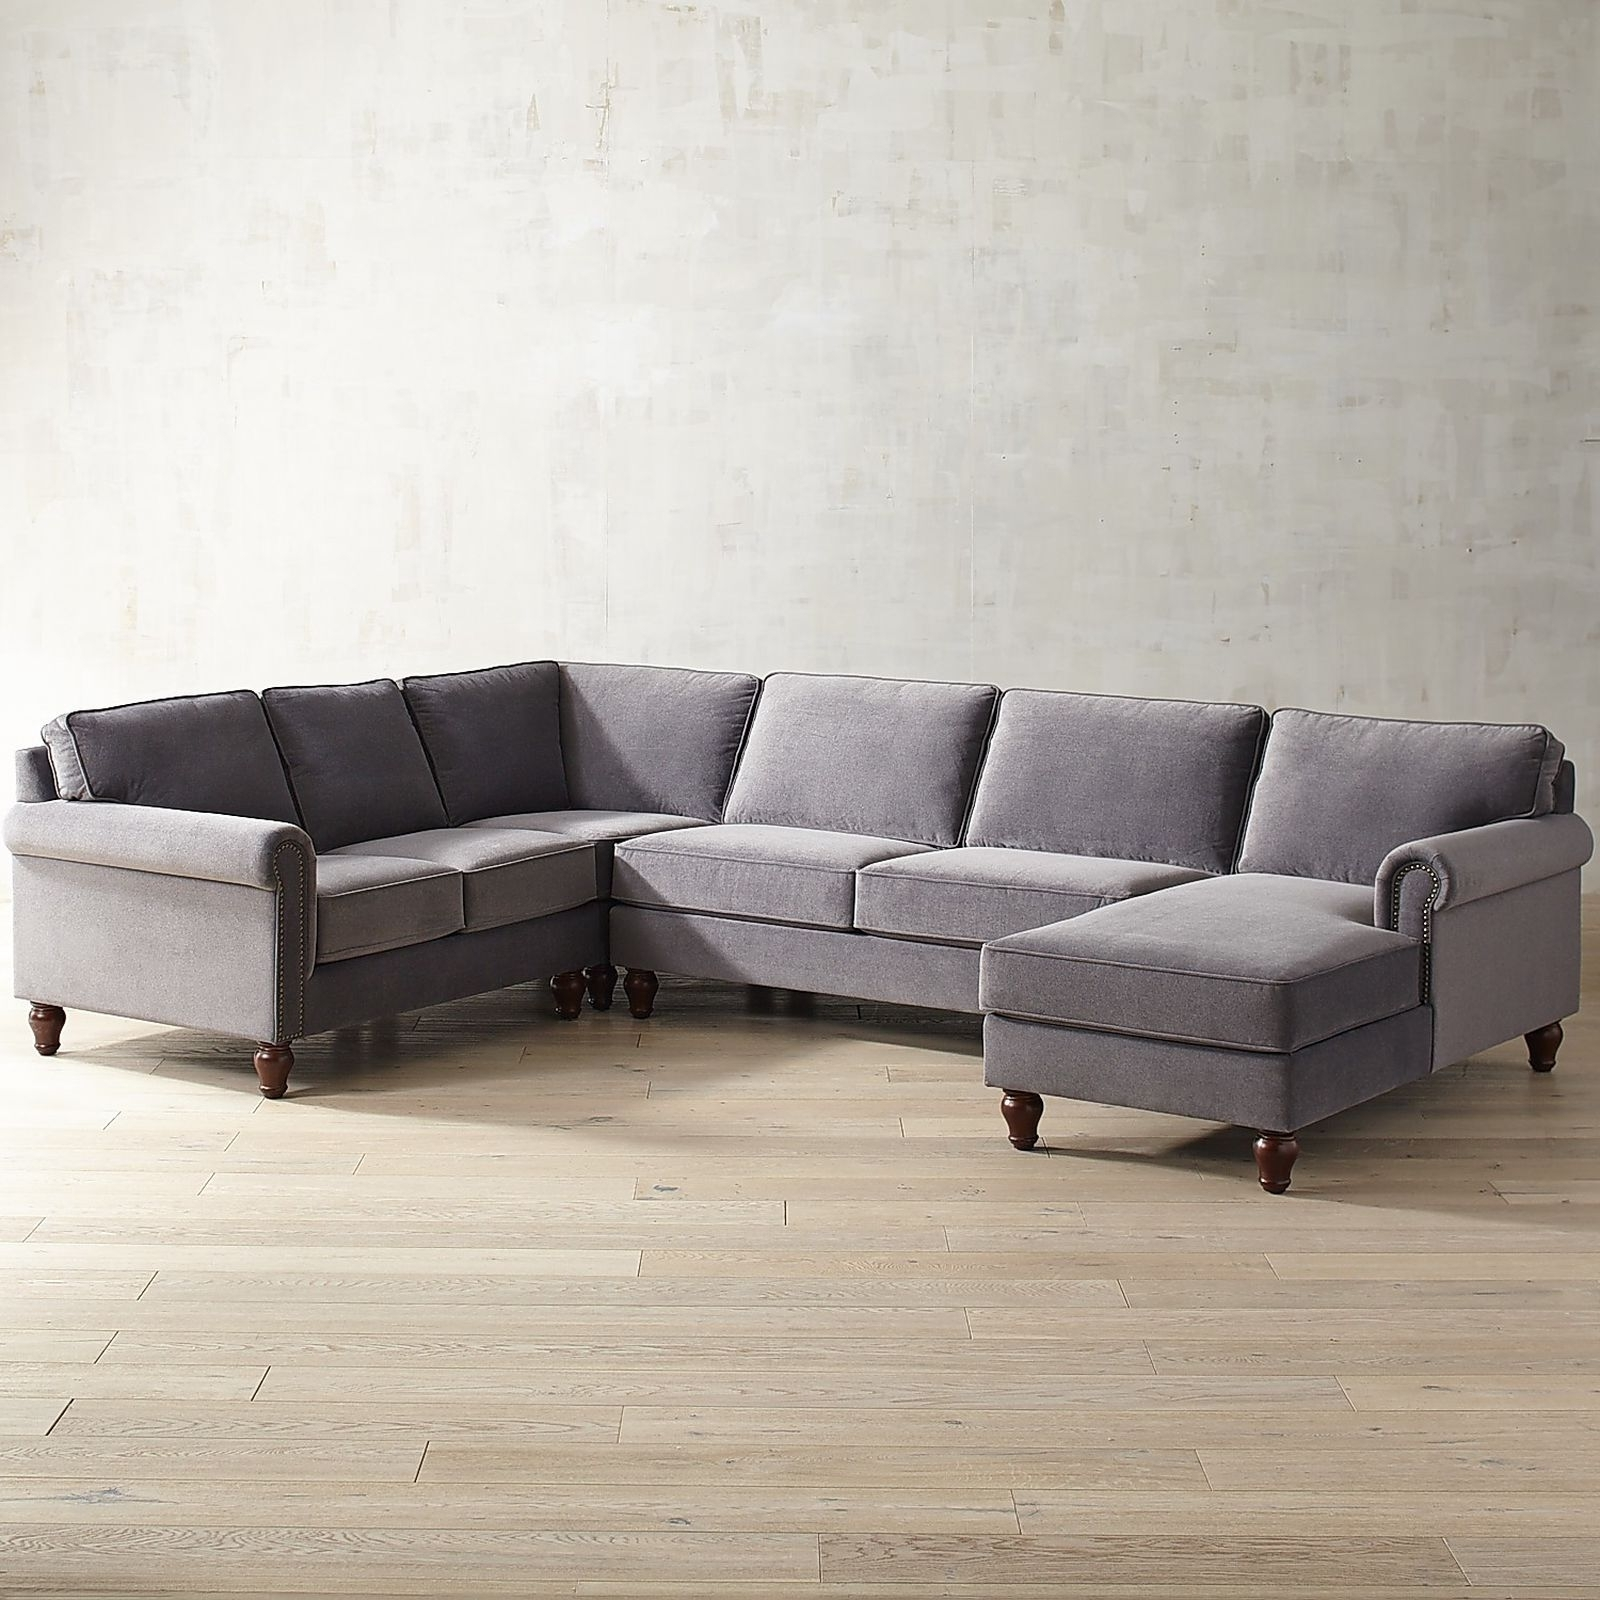 Well Liked Canada Sale Sectional Sofas With Regard To Sectional Sofa Clearance Sale Sofas Warehouse Toronto Fabric (View 15 of 15)